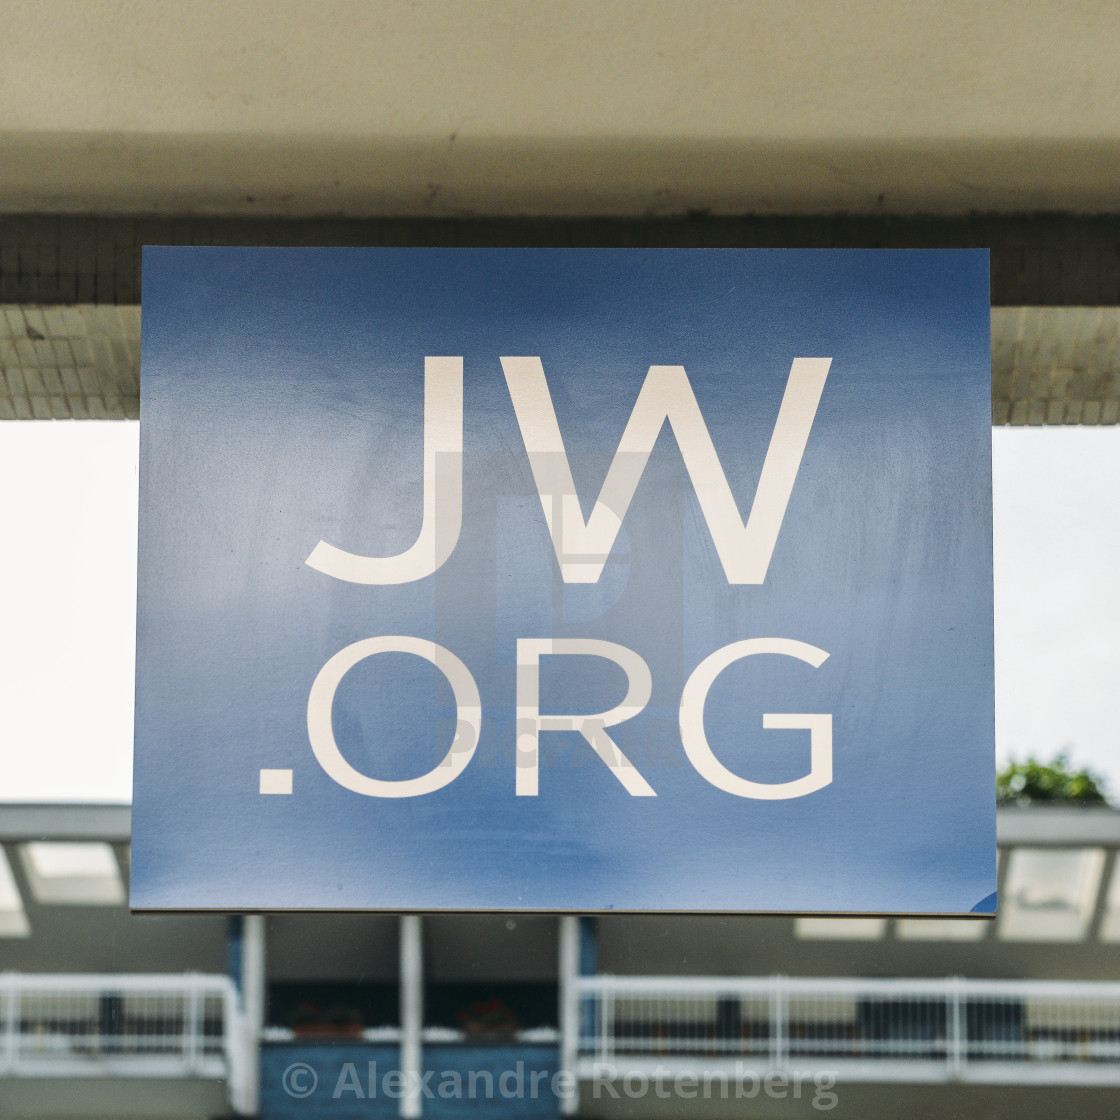 View a sign outside a Jehovah's Witnesses Kingdom Hall  Founded in